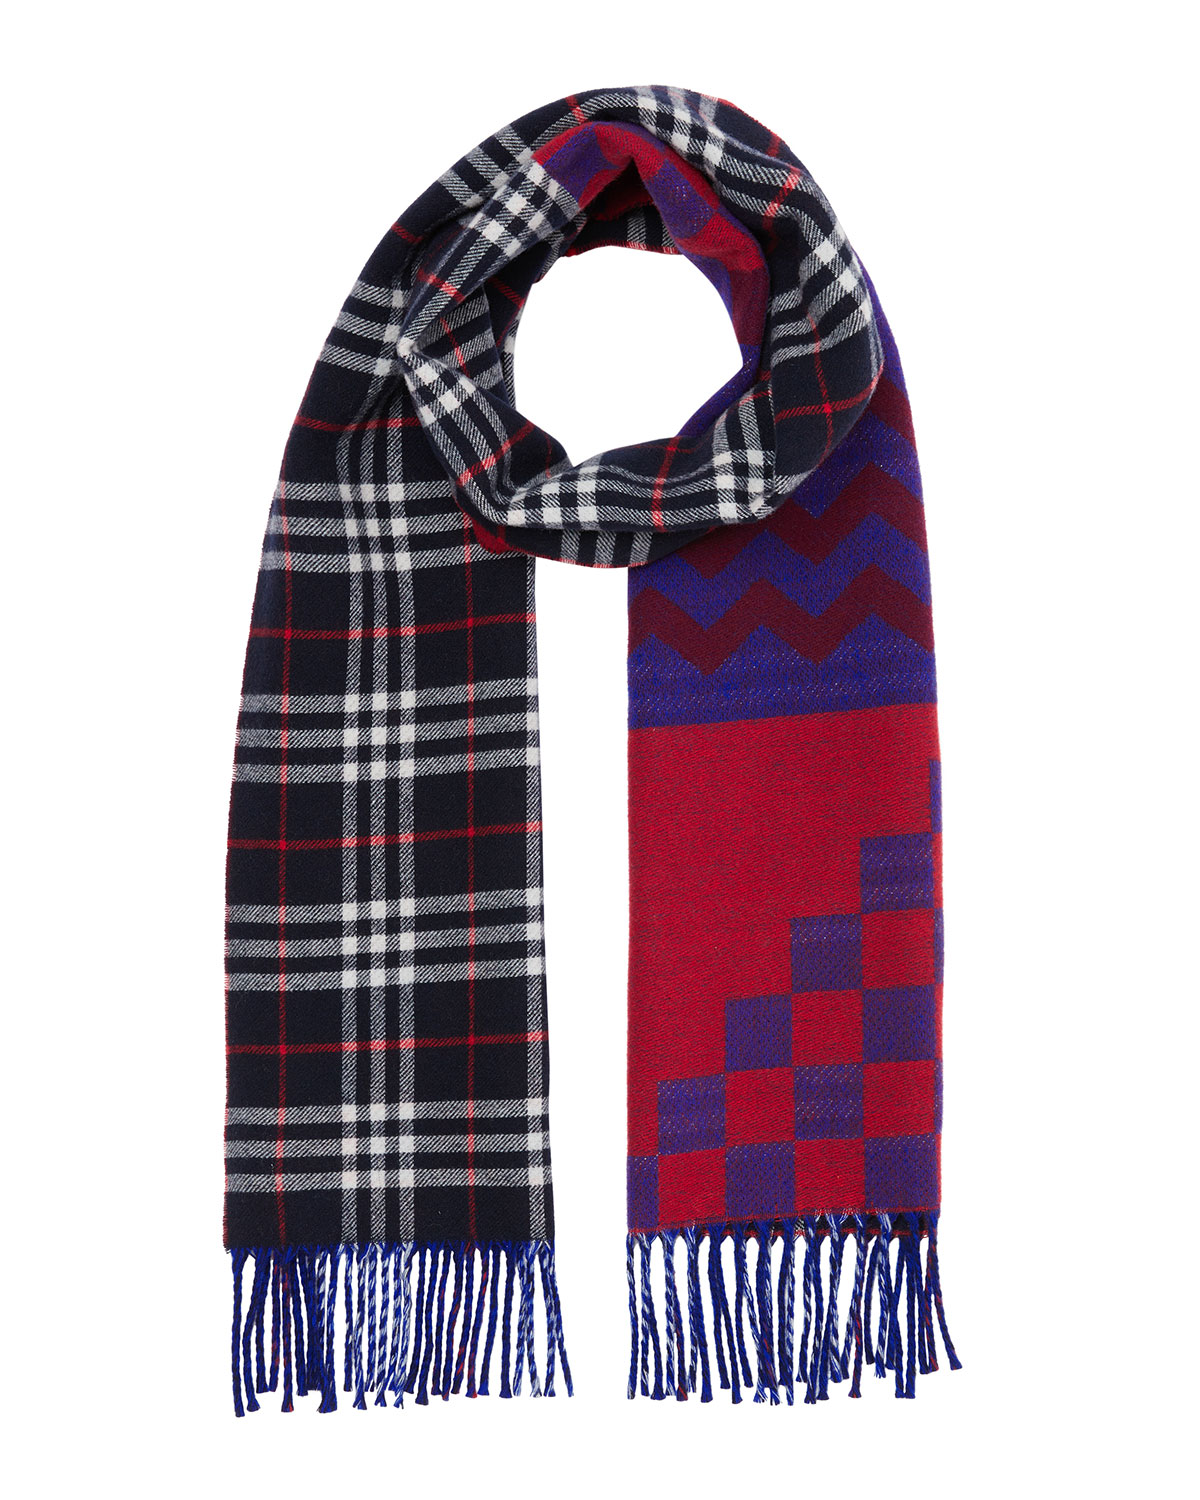 Burberry Men's Zigzag Check Wool/Cashmere Scarf